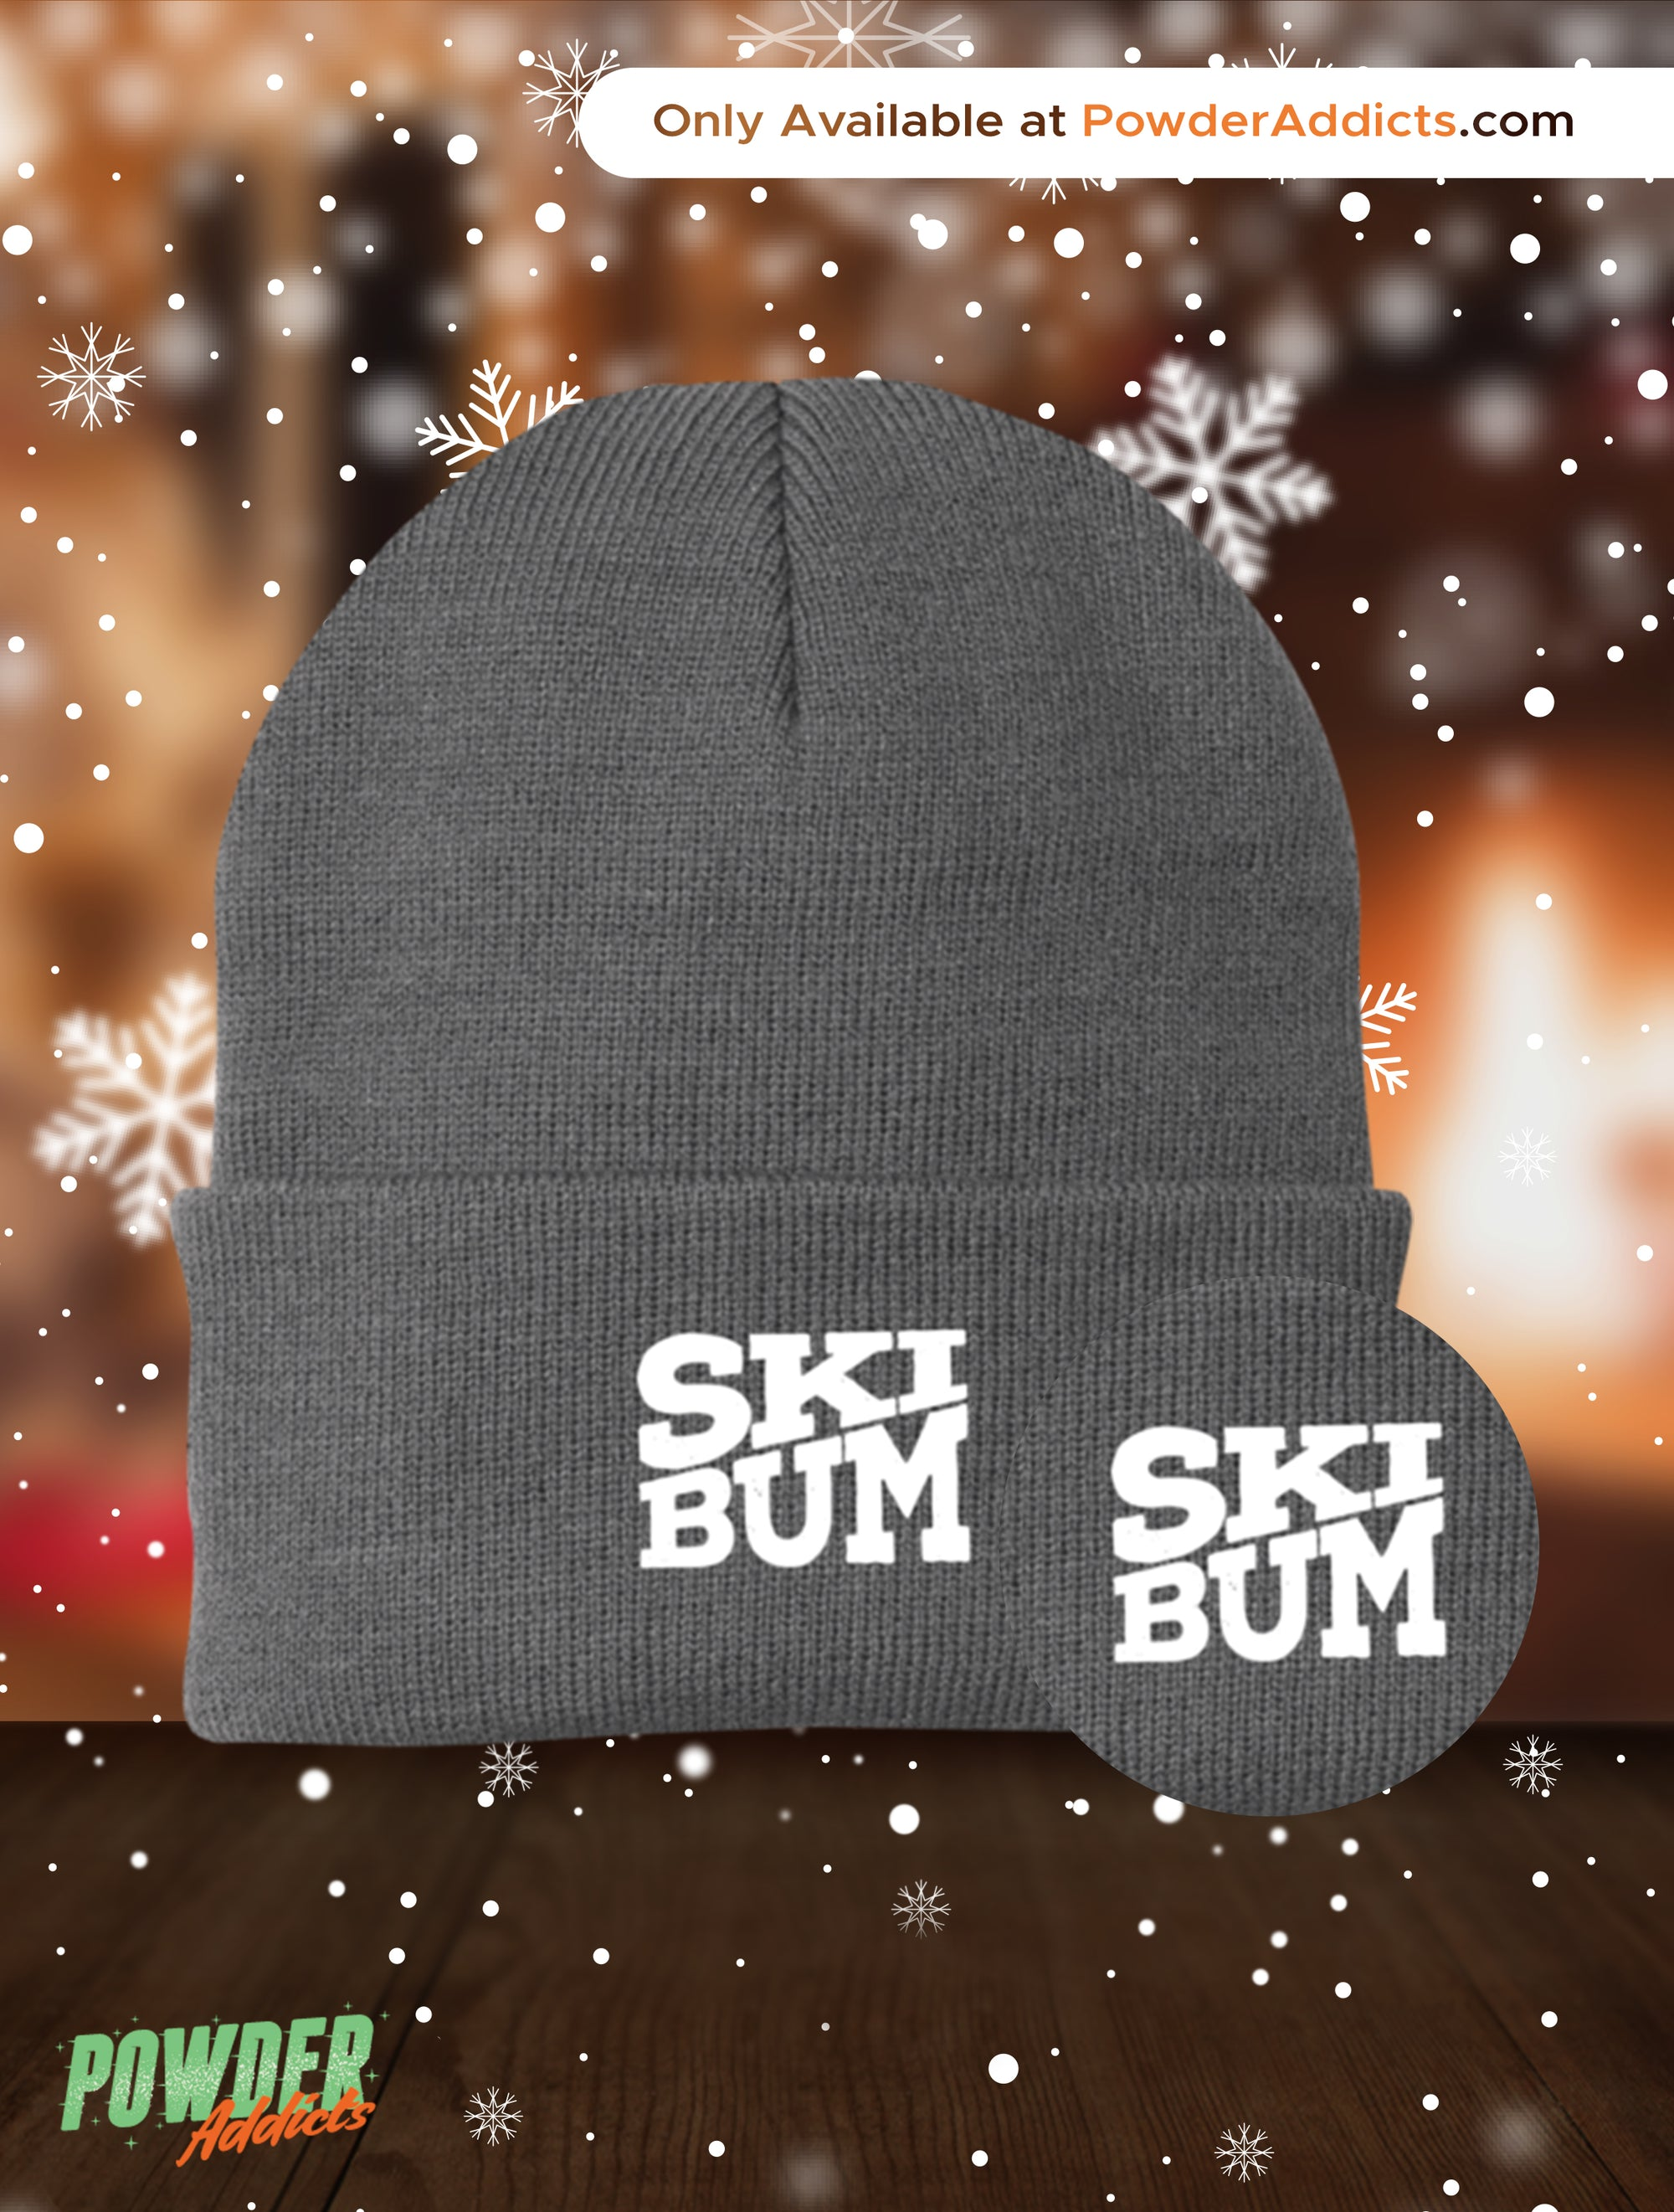 Ski Bum Knit Cap - Powderaddicts